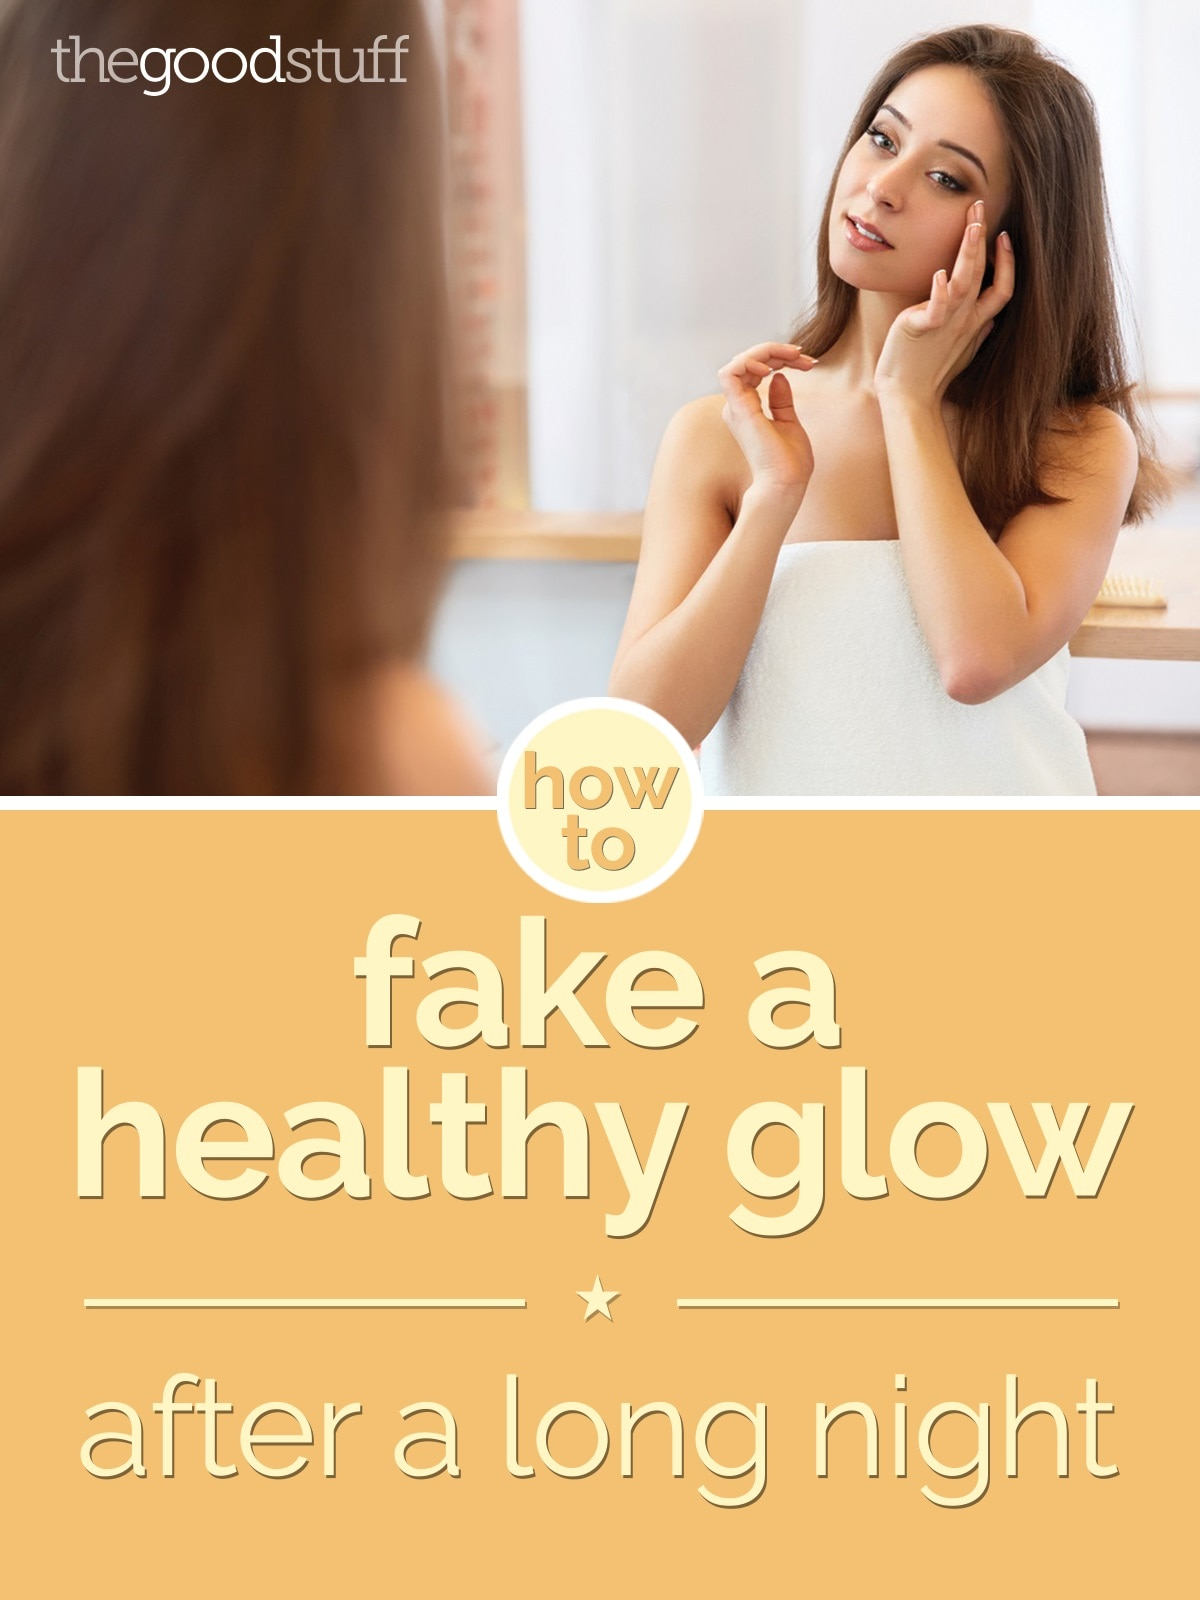 style-fake-a-healthy-glow